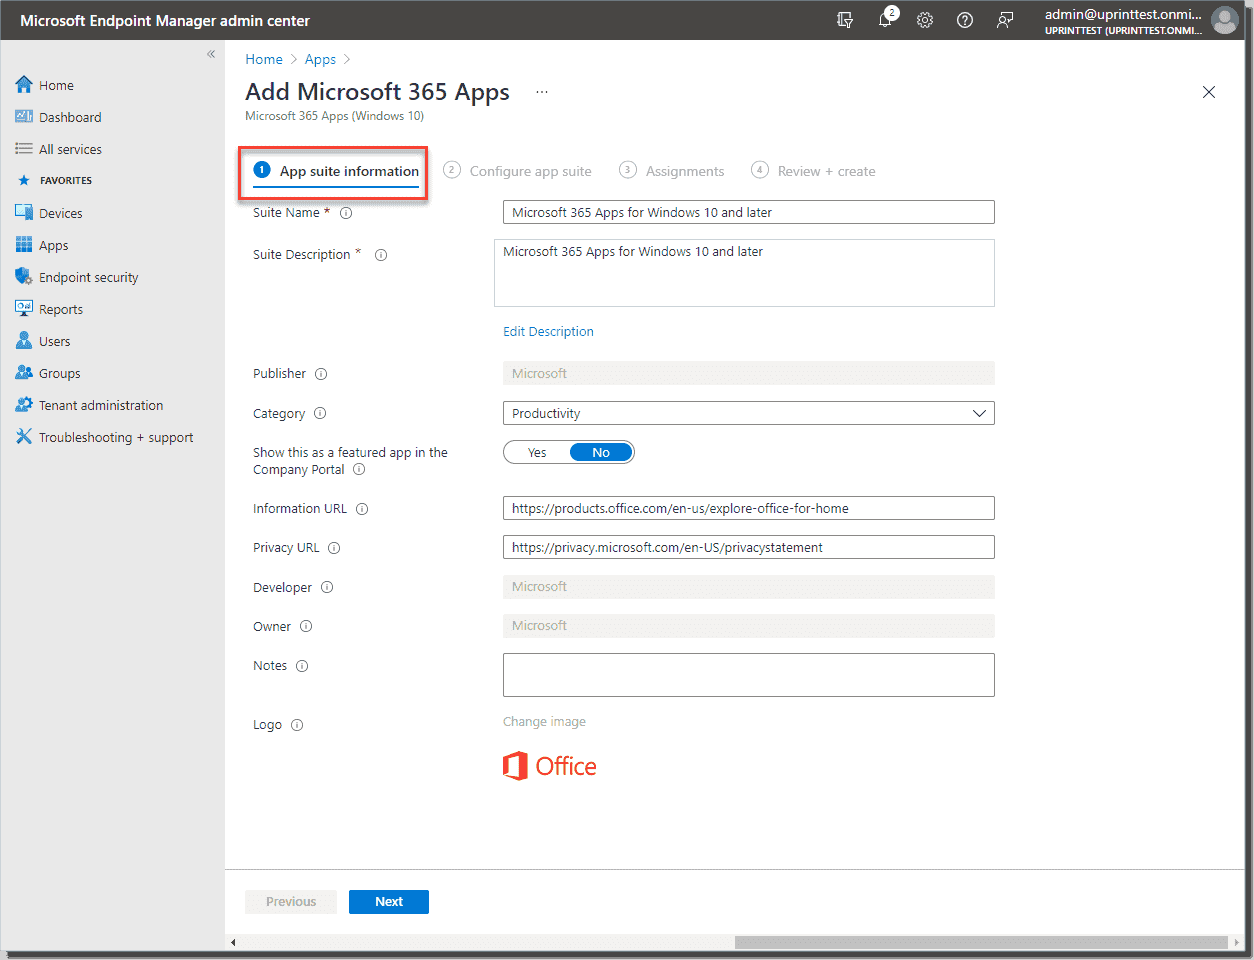 Deploying Microsoft 365 apps for Windows 10 and later